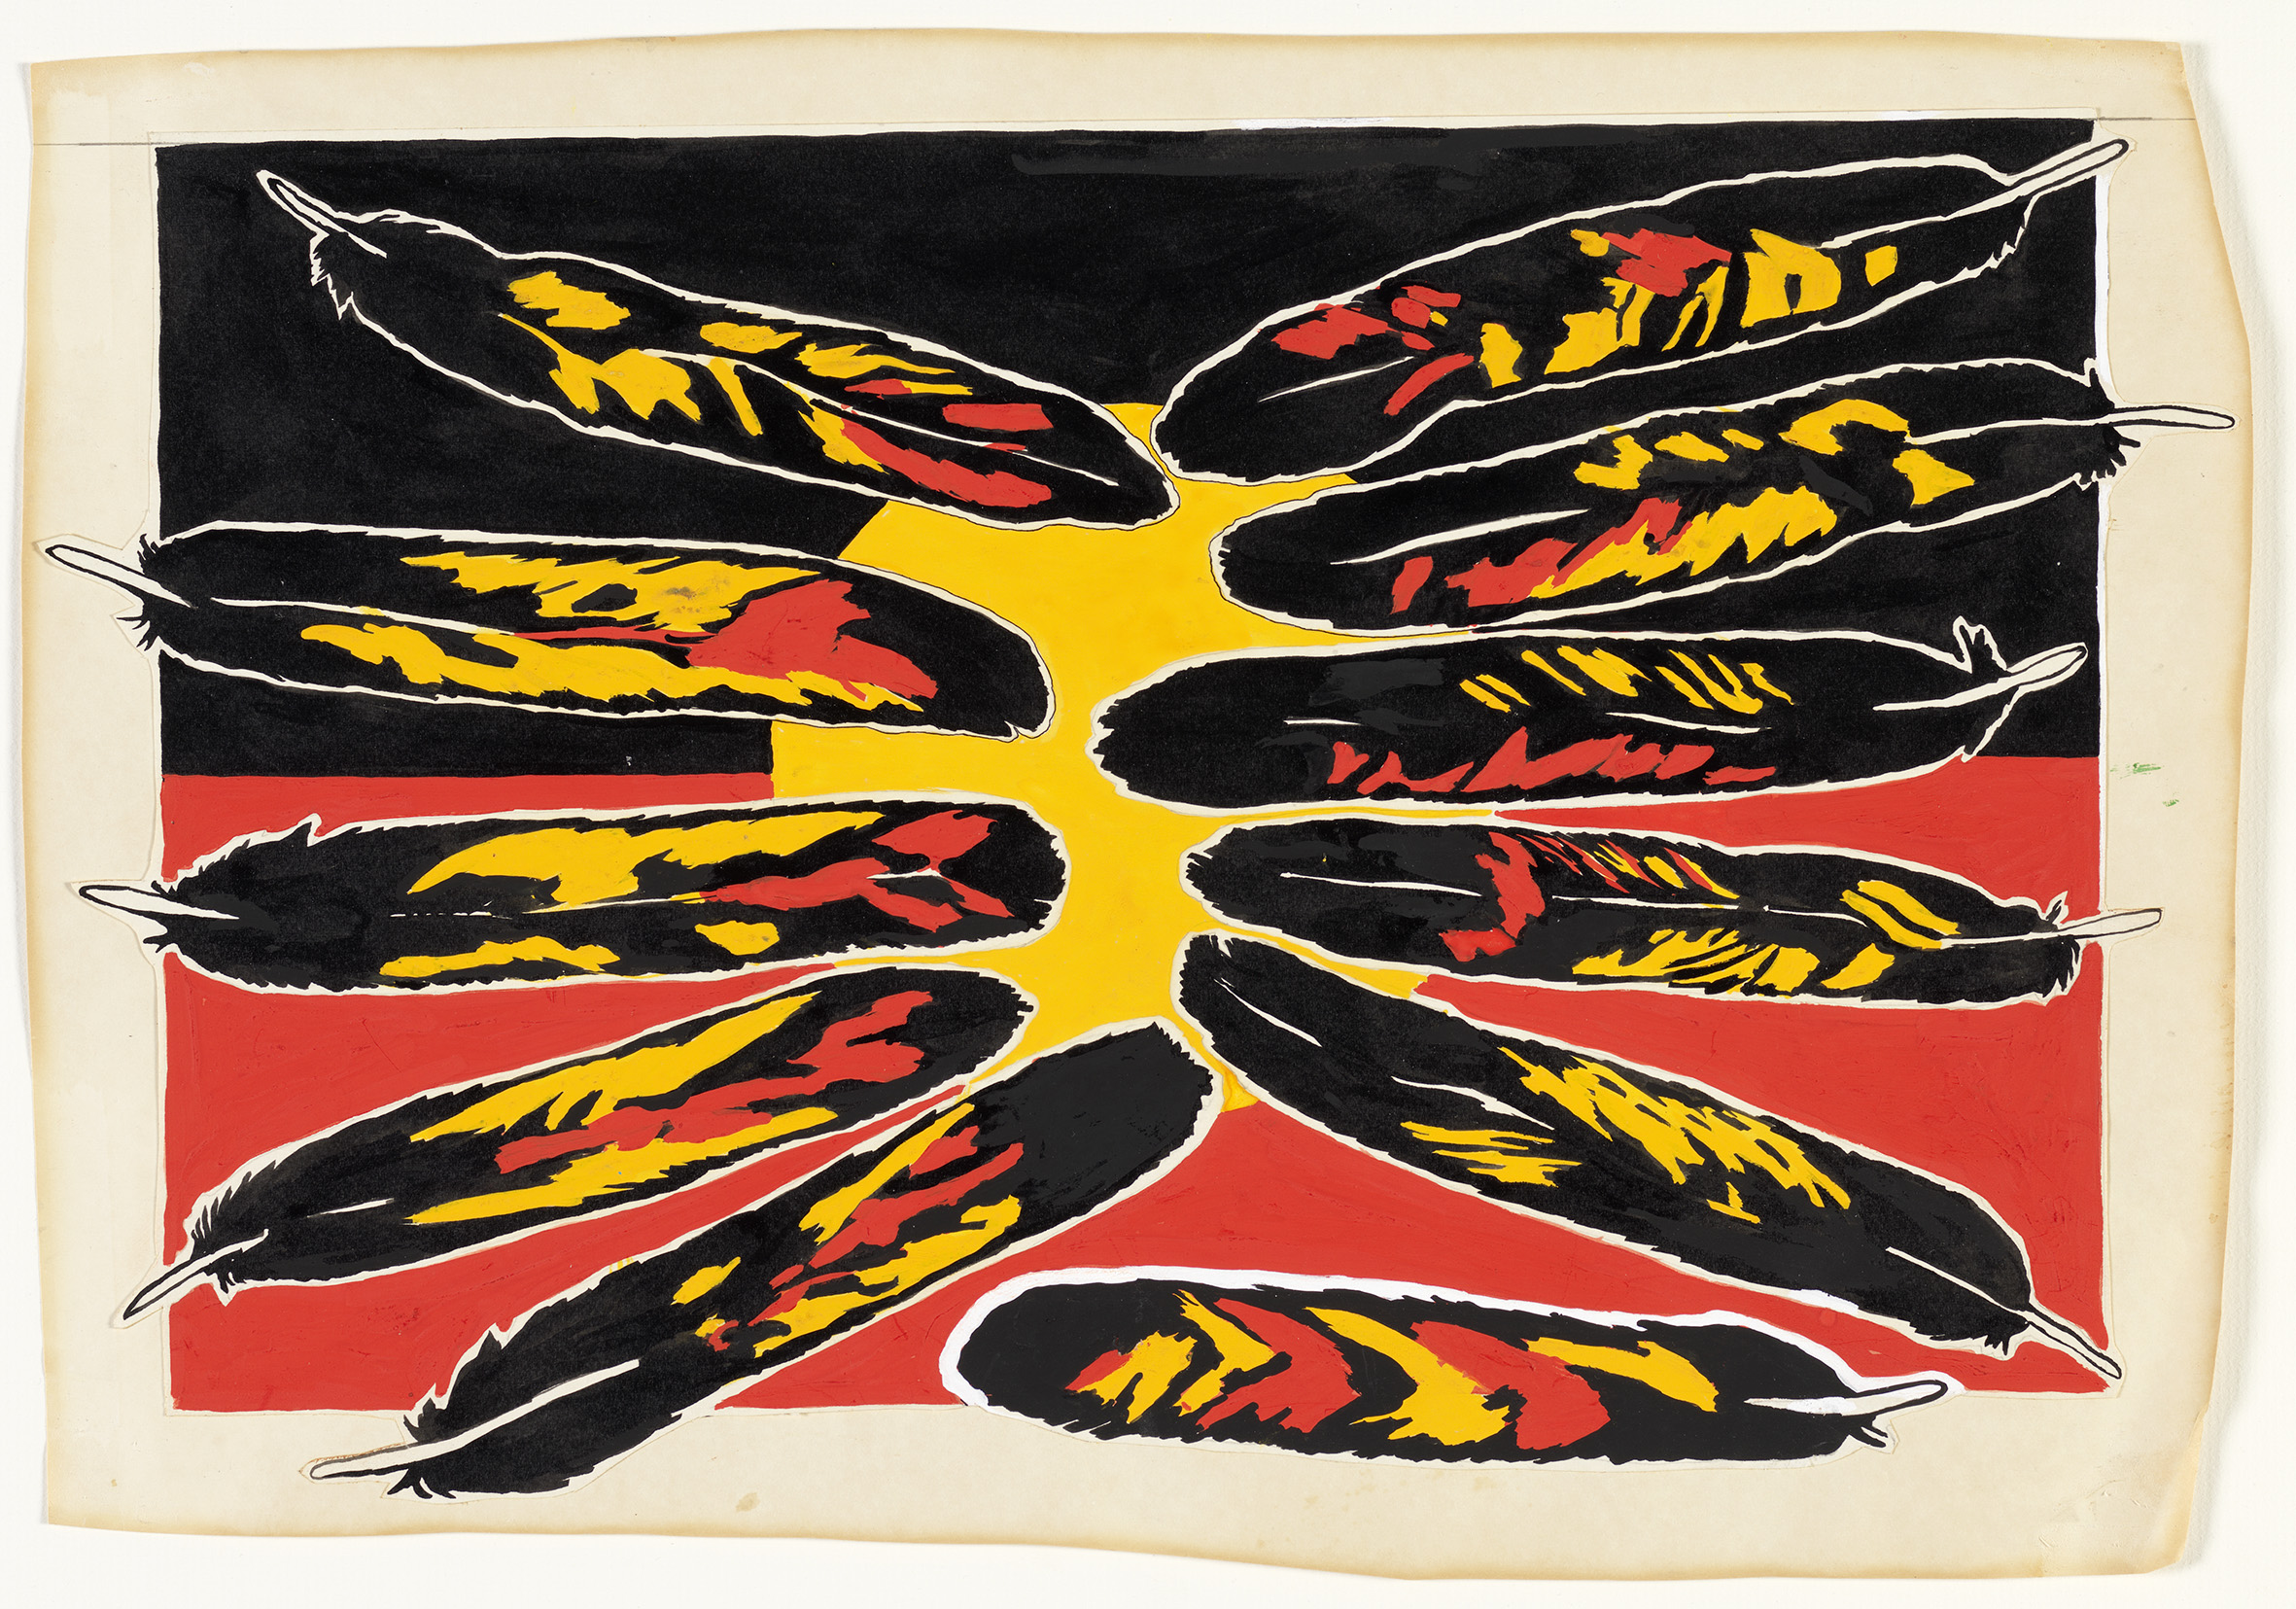 A black, red and yellow graphic of feathers splayed in a pattern